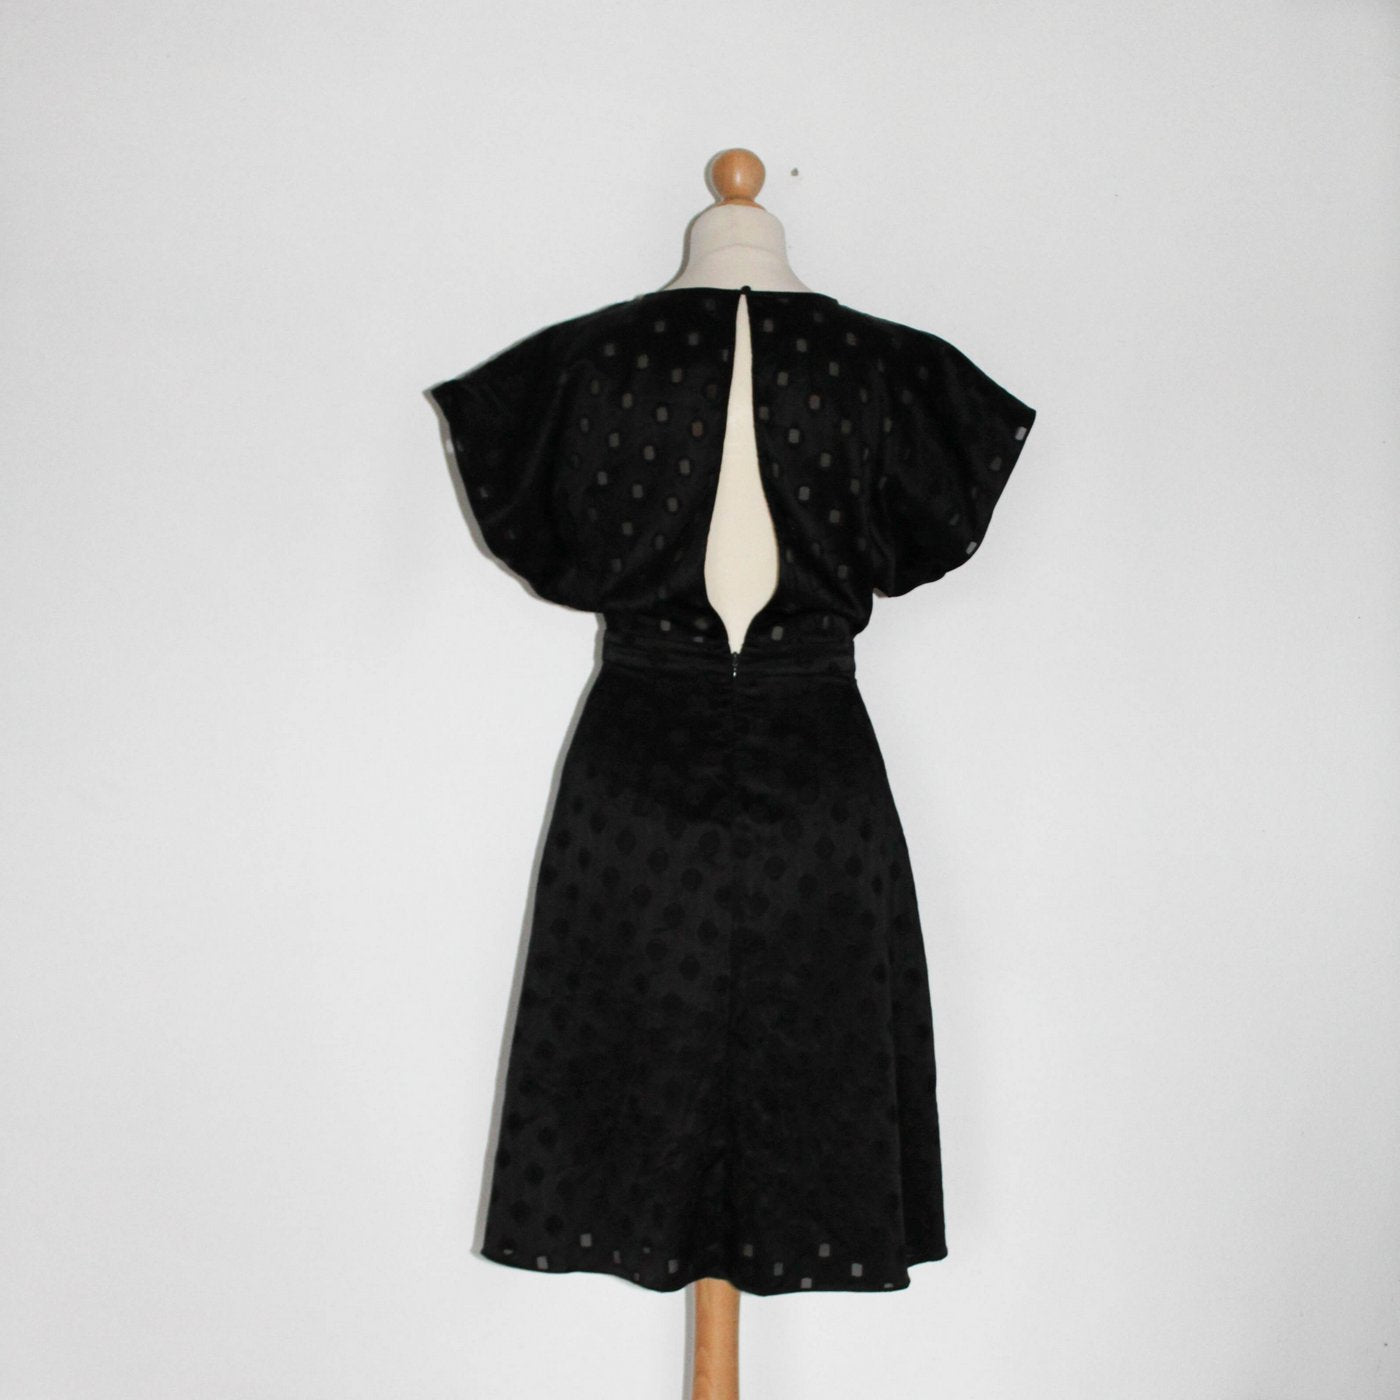 Black Satin Polka Dot Dress